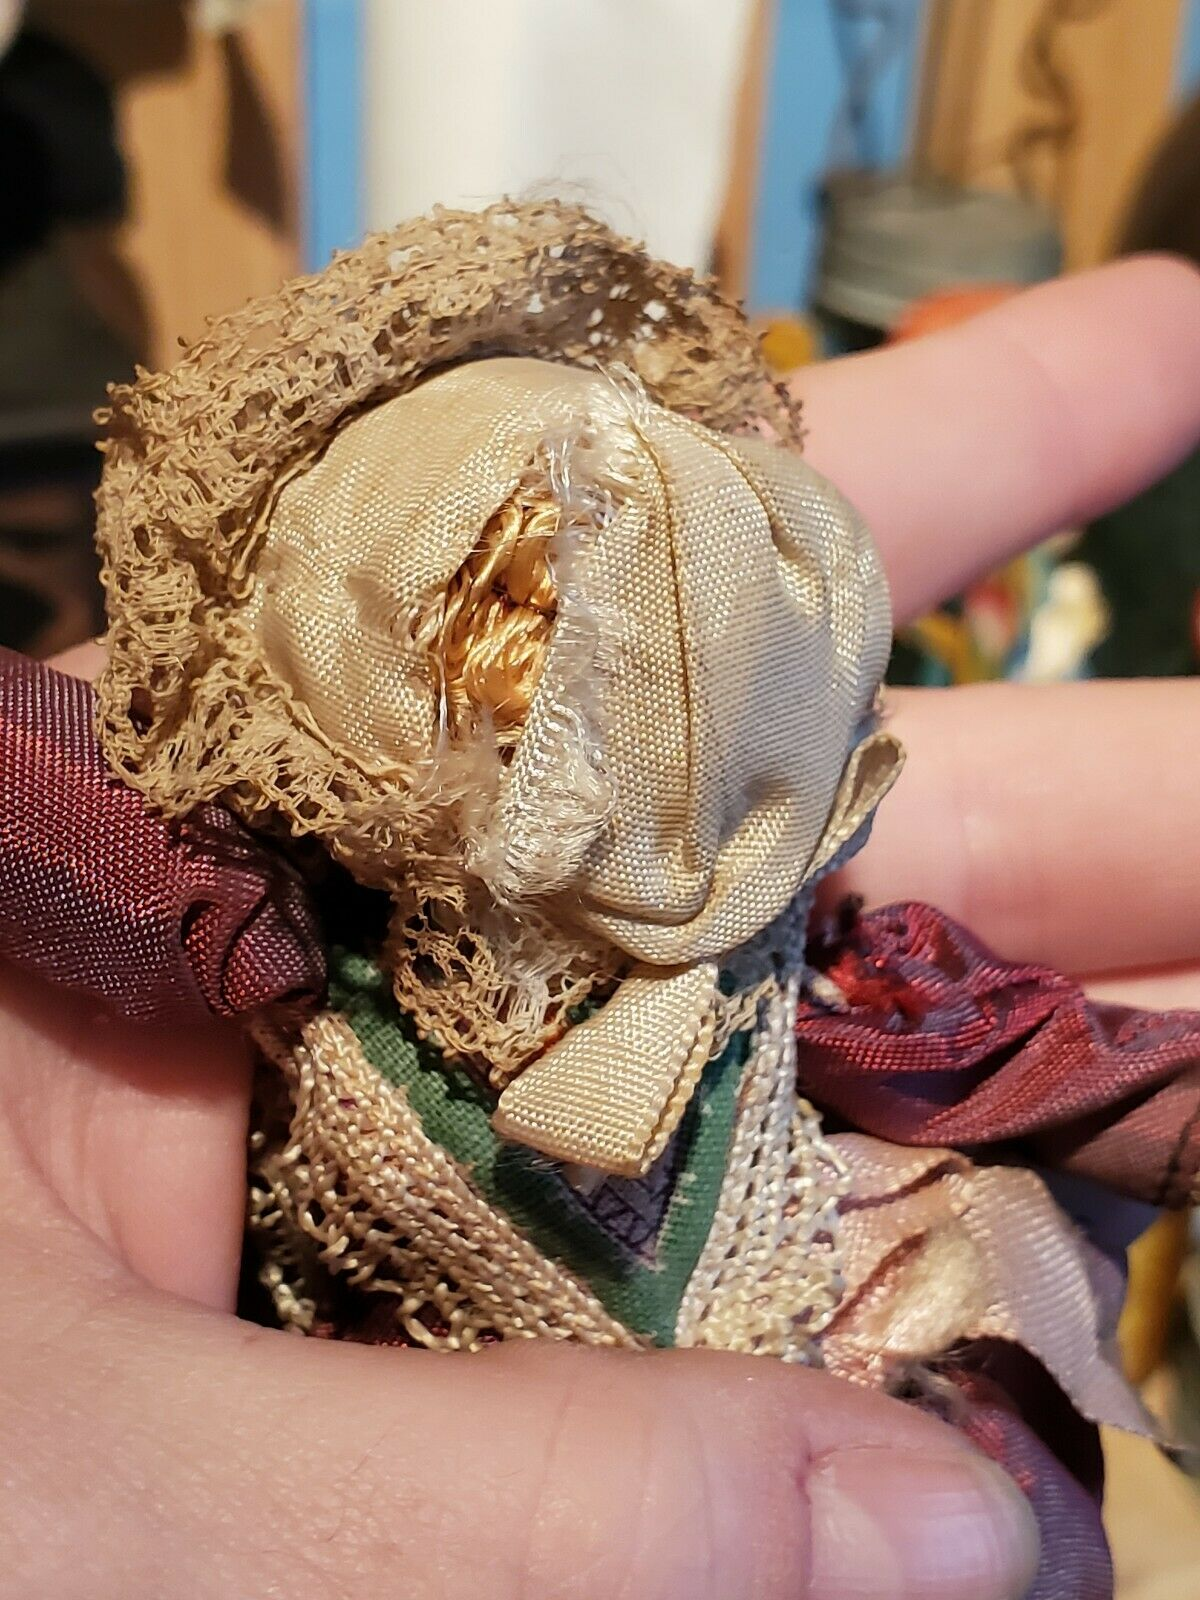 One-Of-A-Kind, Wise, Worldly & Wondrous Gypsy Witch – Antique Bisque Doll